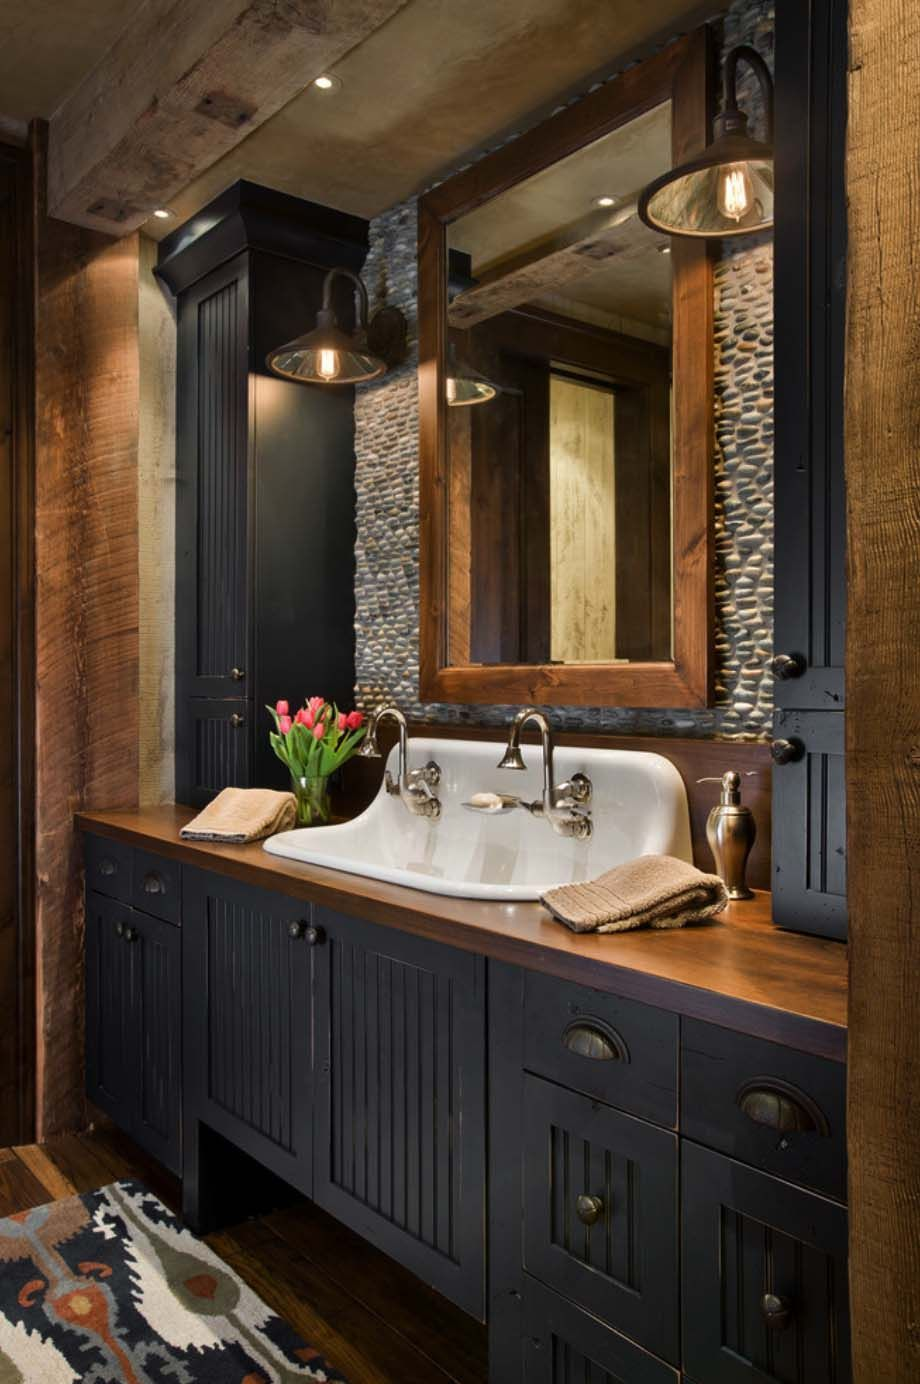 Rustic yet refined mountain home surrounded by Montana's wilderness is part of Farmhouse bathroom decor, Rustic bathroom vanities, Farmhouse master bathroom, Rustic bathroom designs, Modern farmhouse bathroom, Rustic bathrooms - This striking architectural masterpiece was designed by one of our favorites, Locati Architects, located in beautiful SeeleySwan Valley in Western Montana